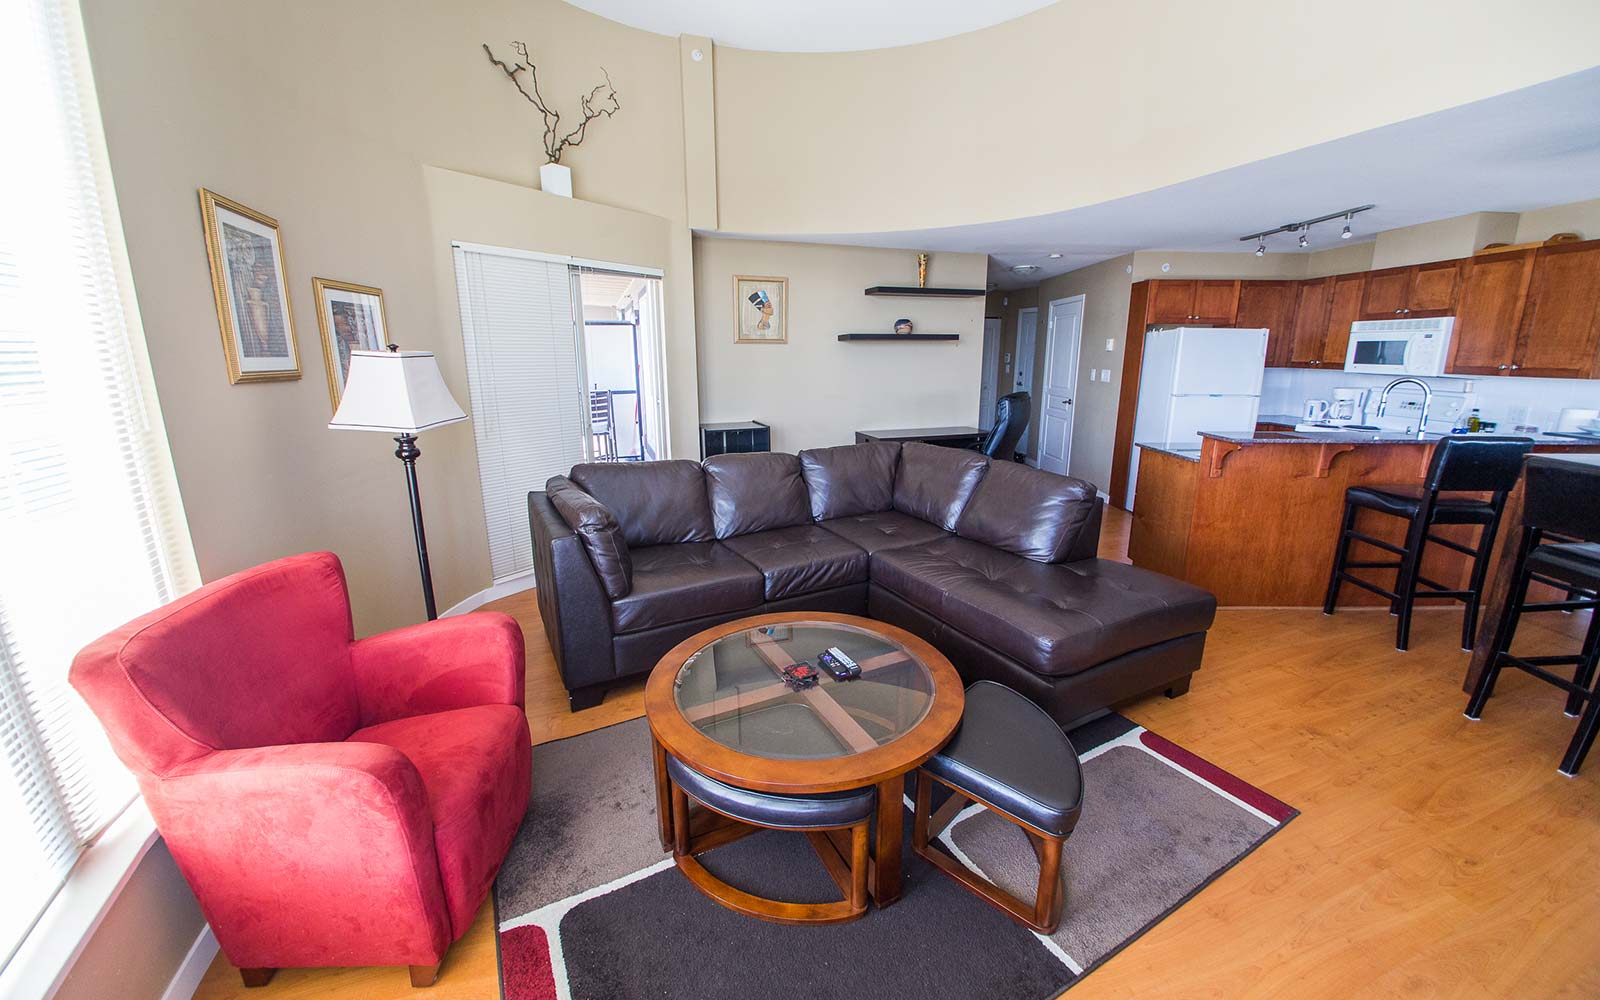 Vancouver Island Canada Airbnb Vacation Holiday Rental Apartment